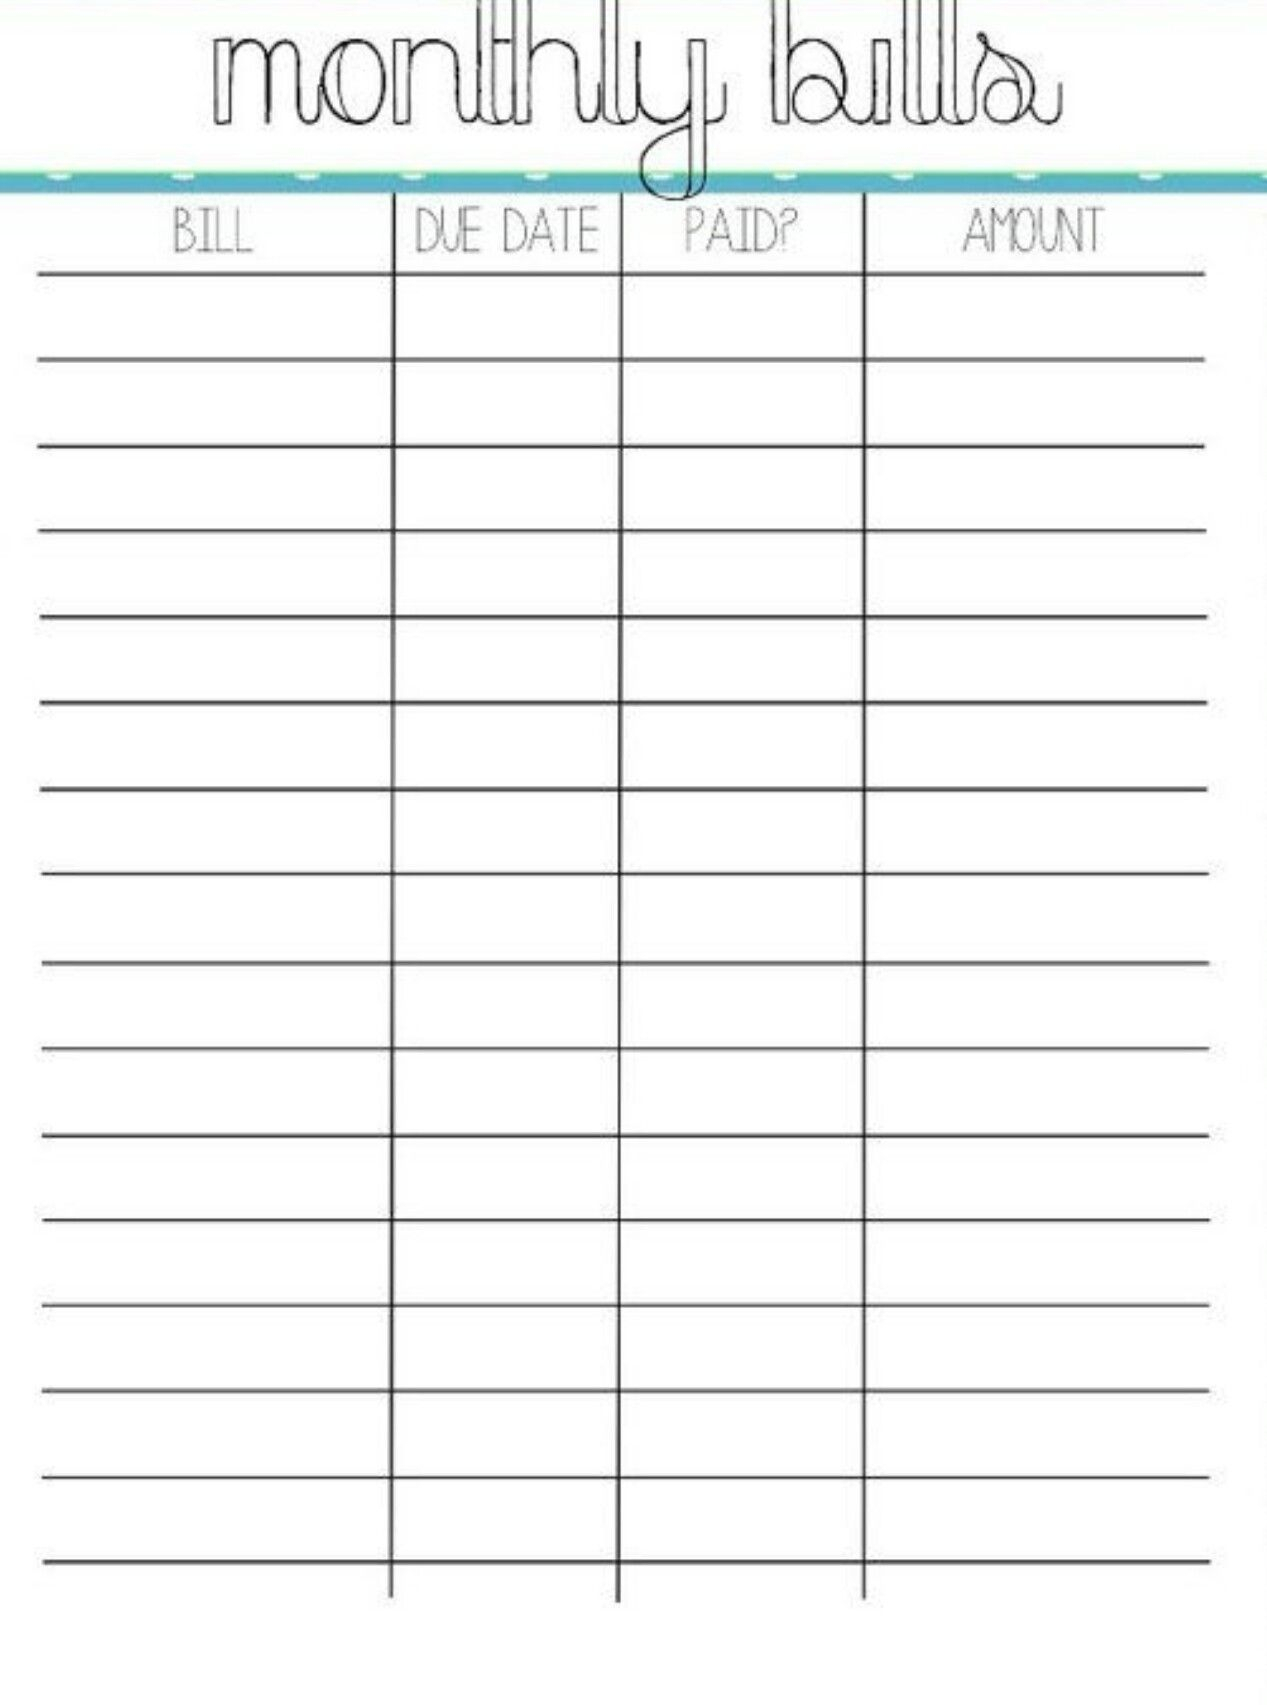 Blank Calendar Printable Monthly Payday Bills And Due